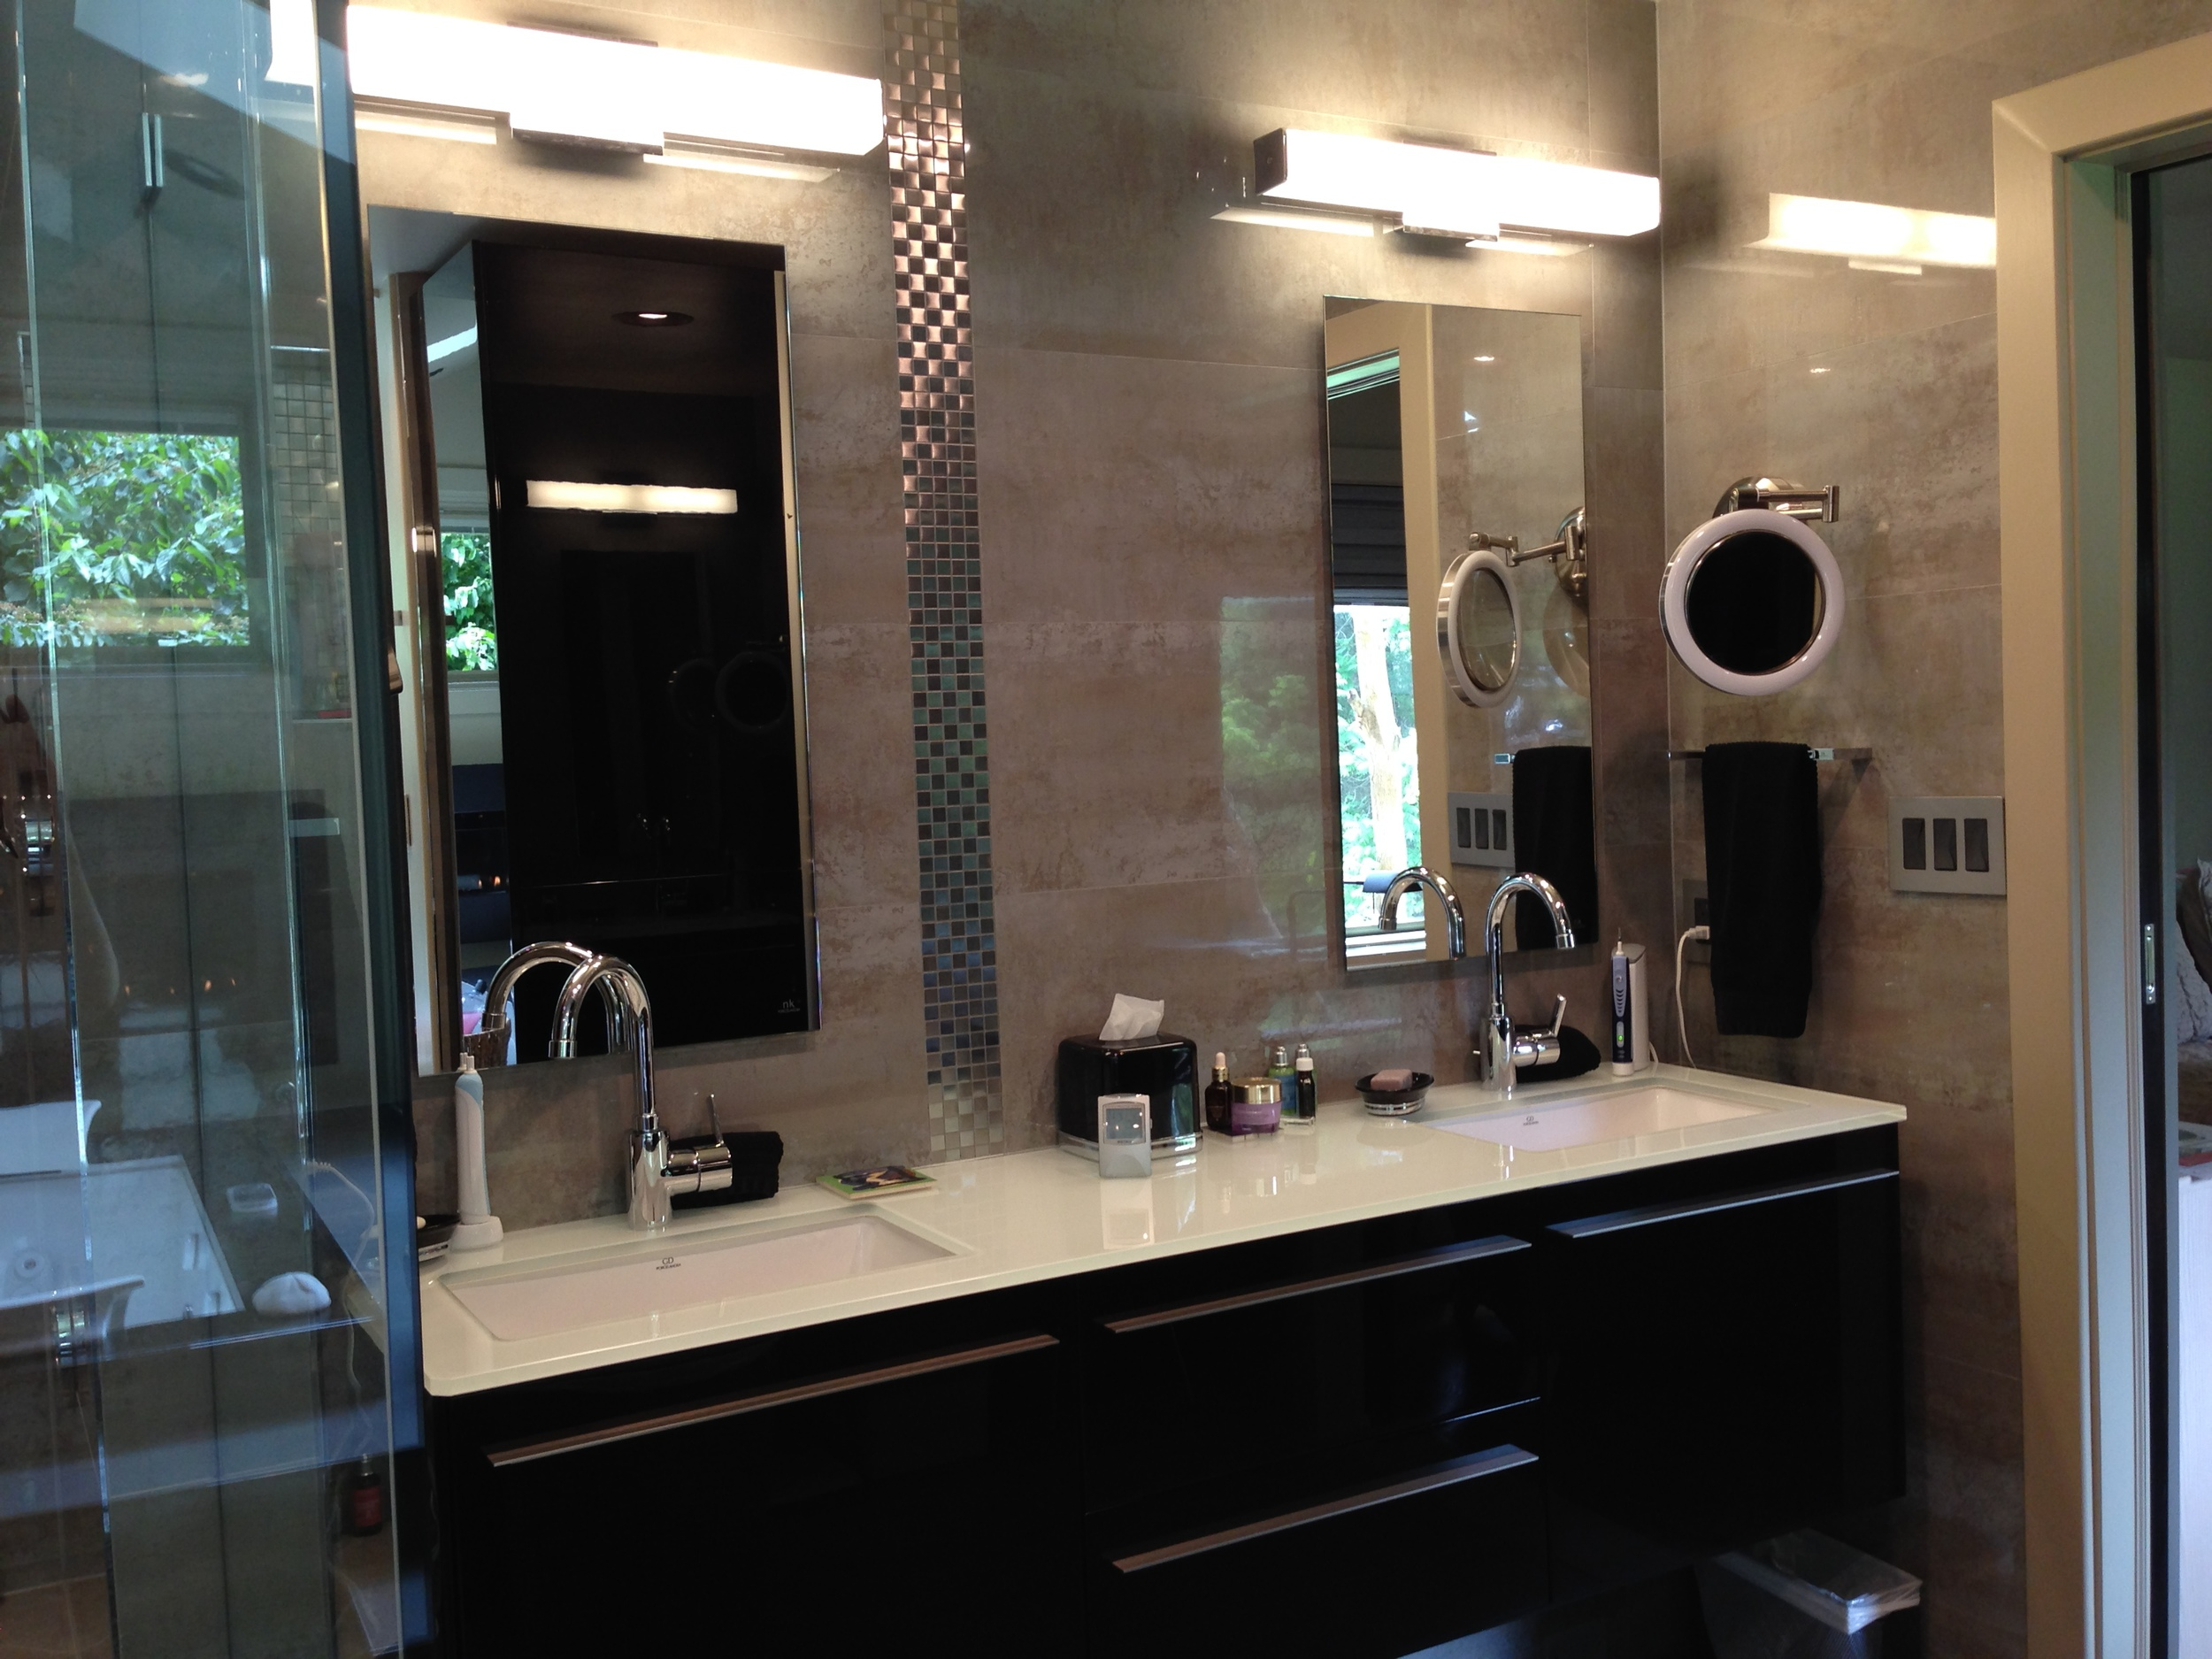 AFTER:  new wall-hung vanity by Porcelanosa in the same location as the old one.